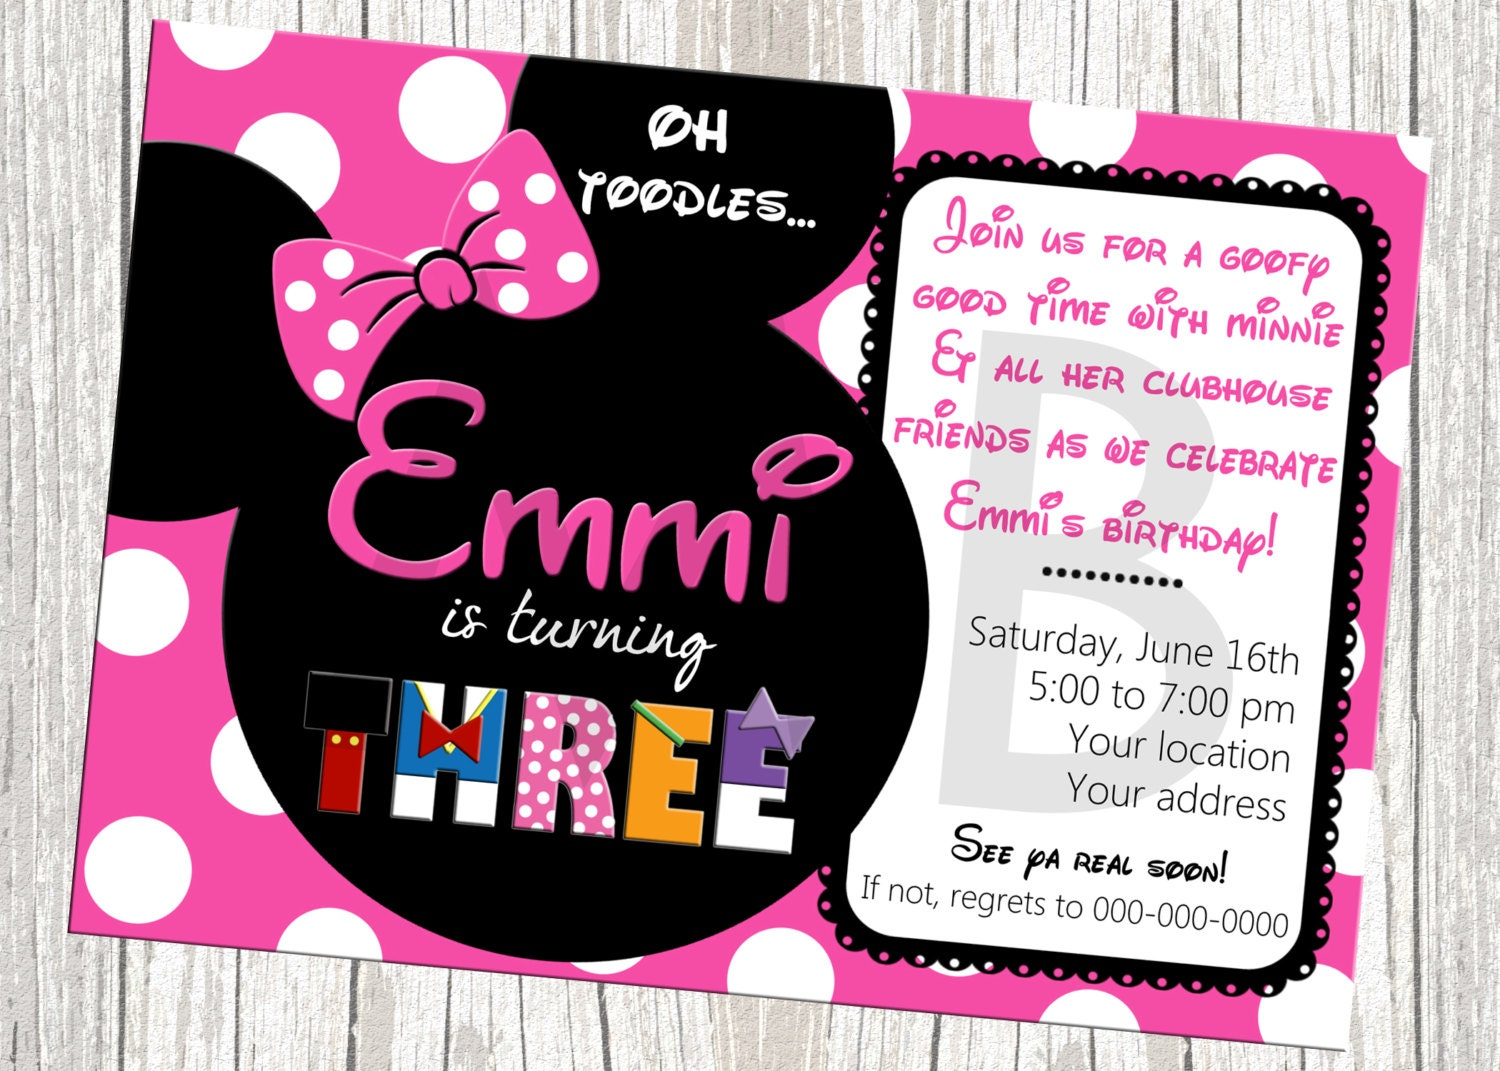 Customized Minnie Mouse Invitations with nice invitations ideas